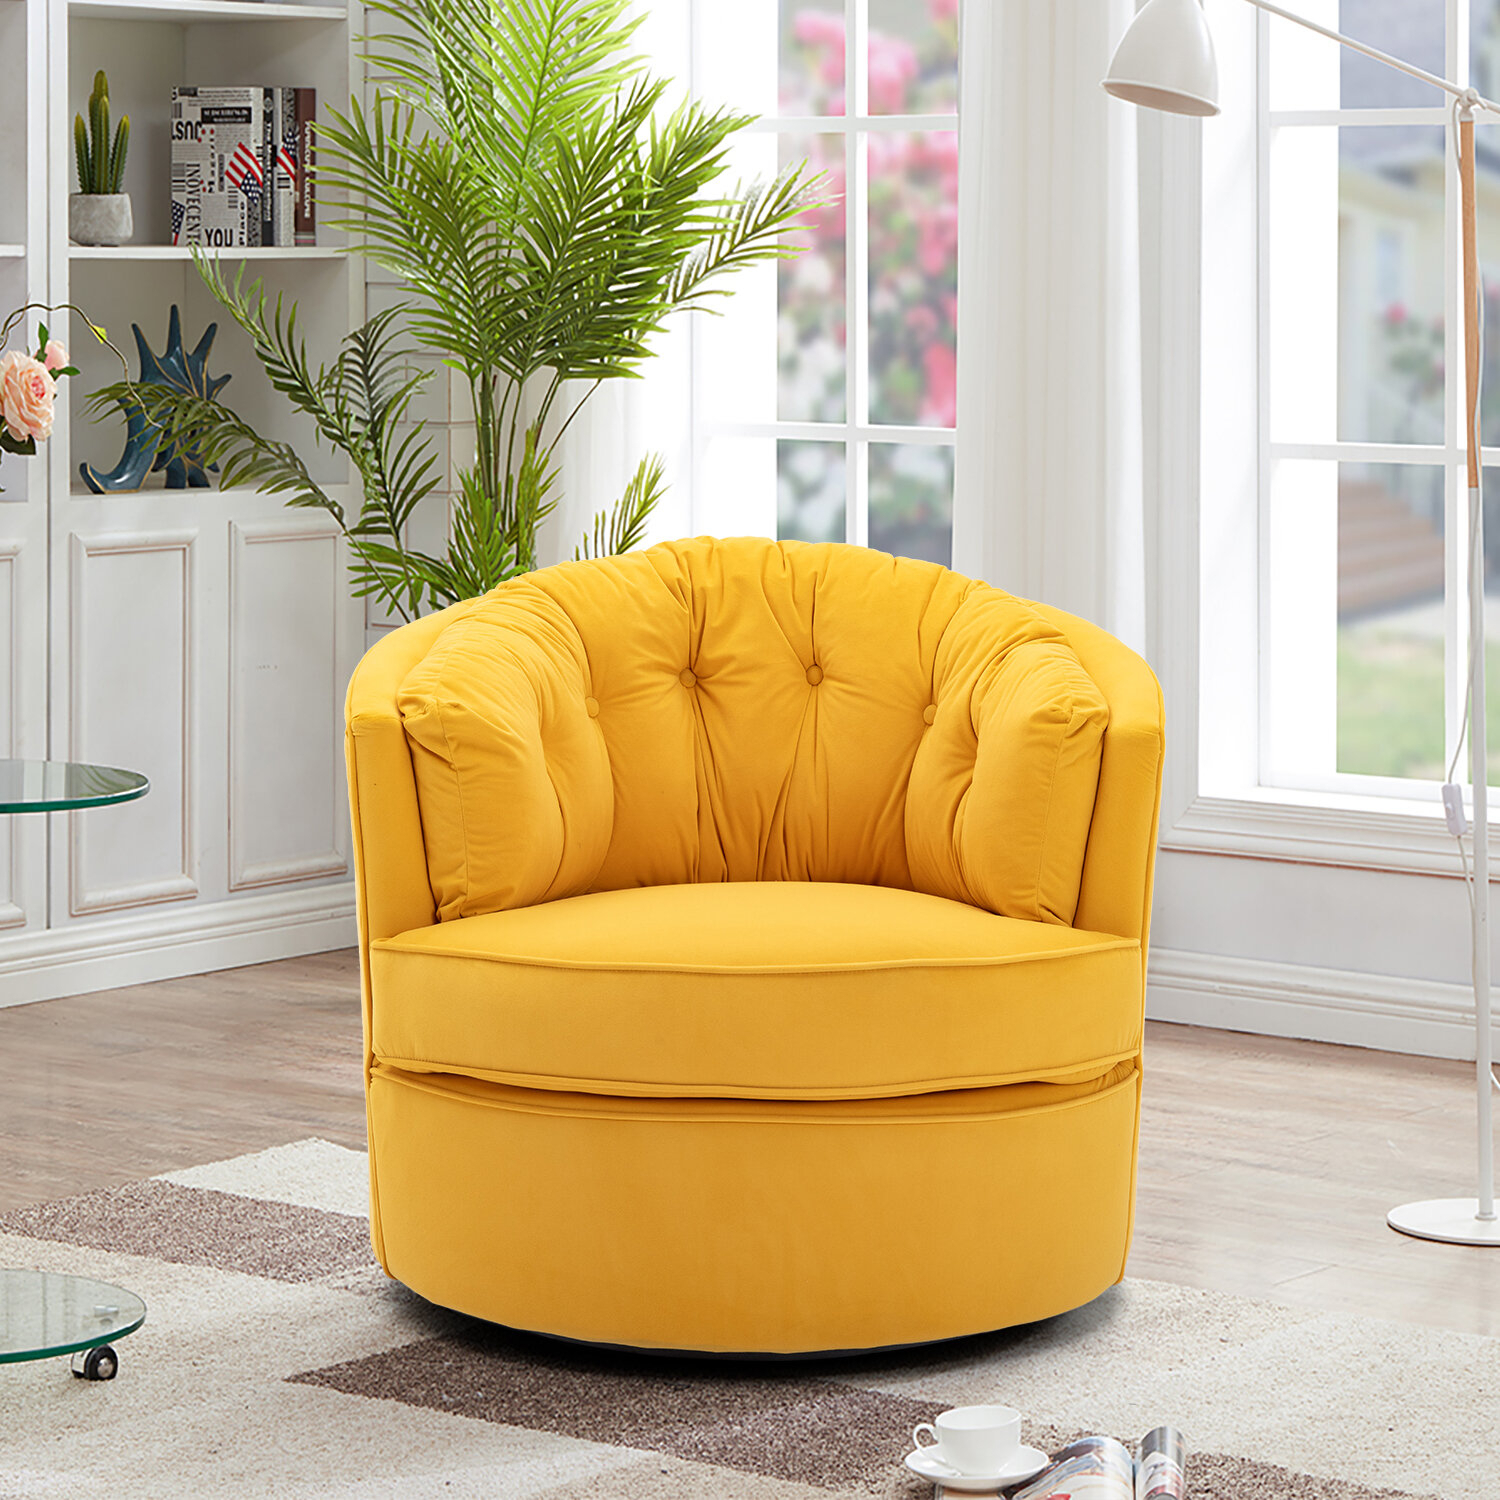 Barrel Yellow Accent Chairs You'Ll Love In 2021 | Wayfair Within Dorcaster Barrel Chairs (View 7 of 15)